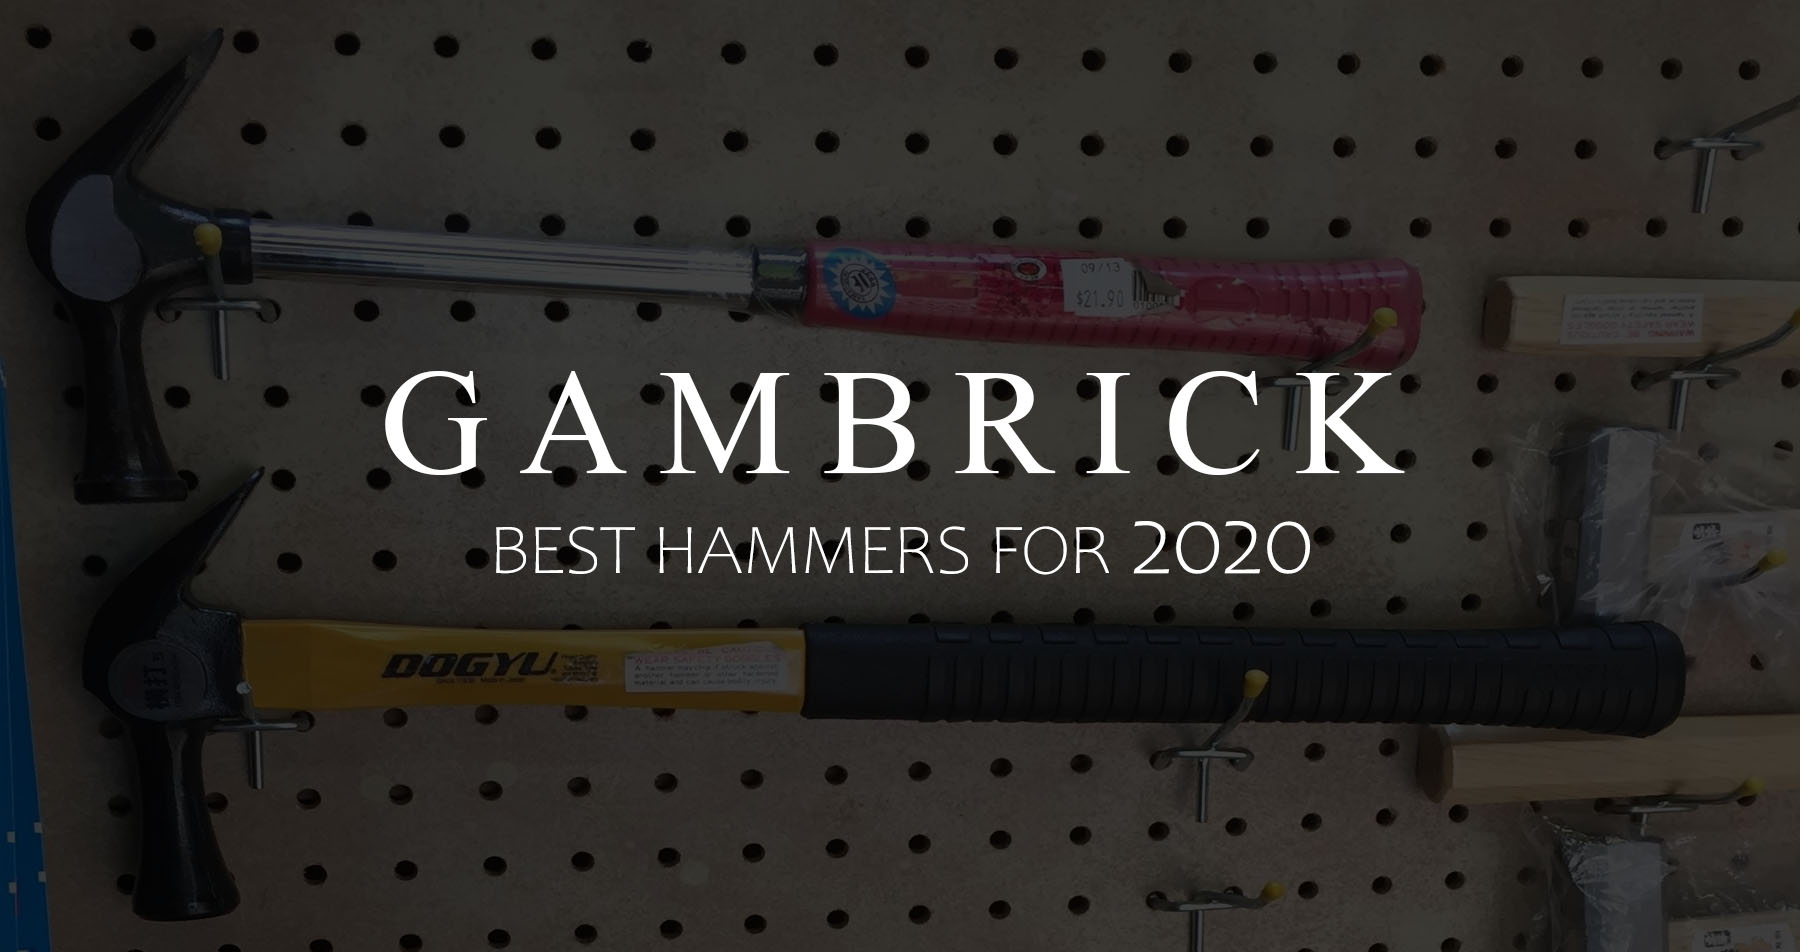 best hammers for 2020 banner pic